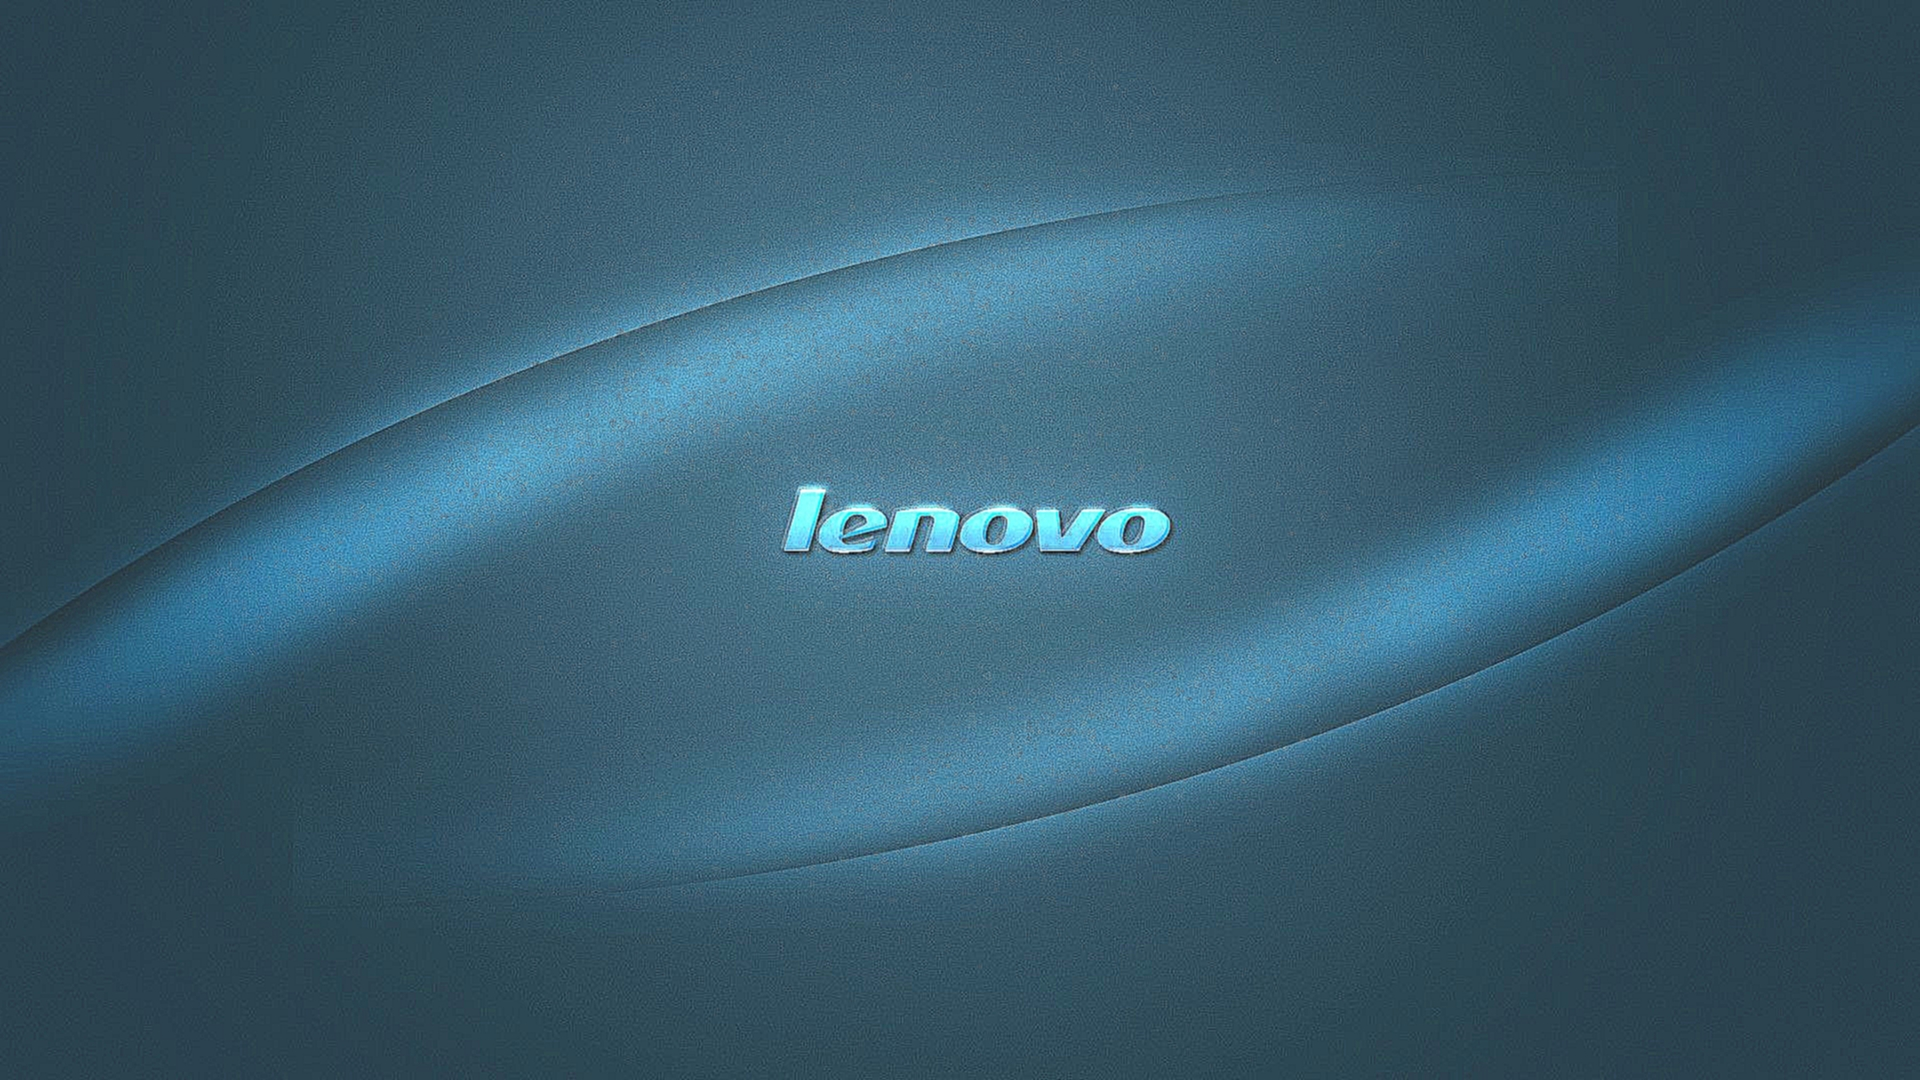 Lenovo Wallpaper Collection in HD for Download.